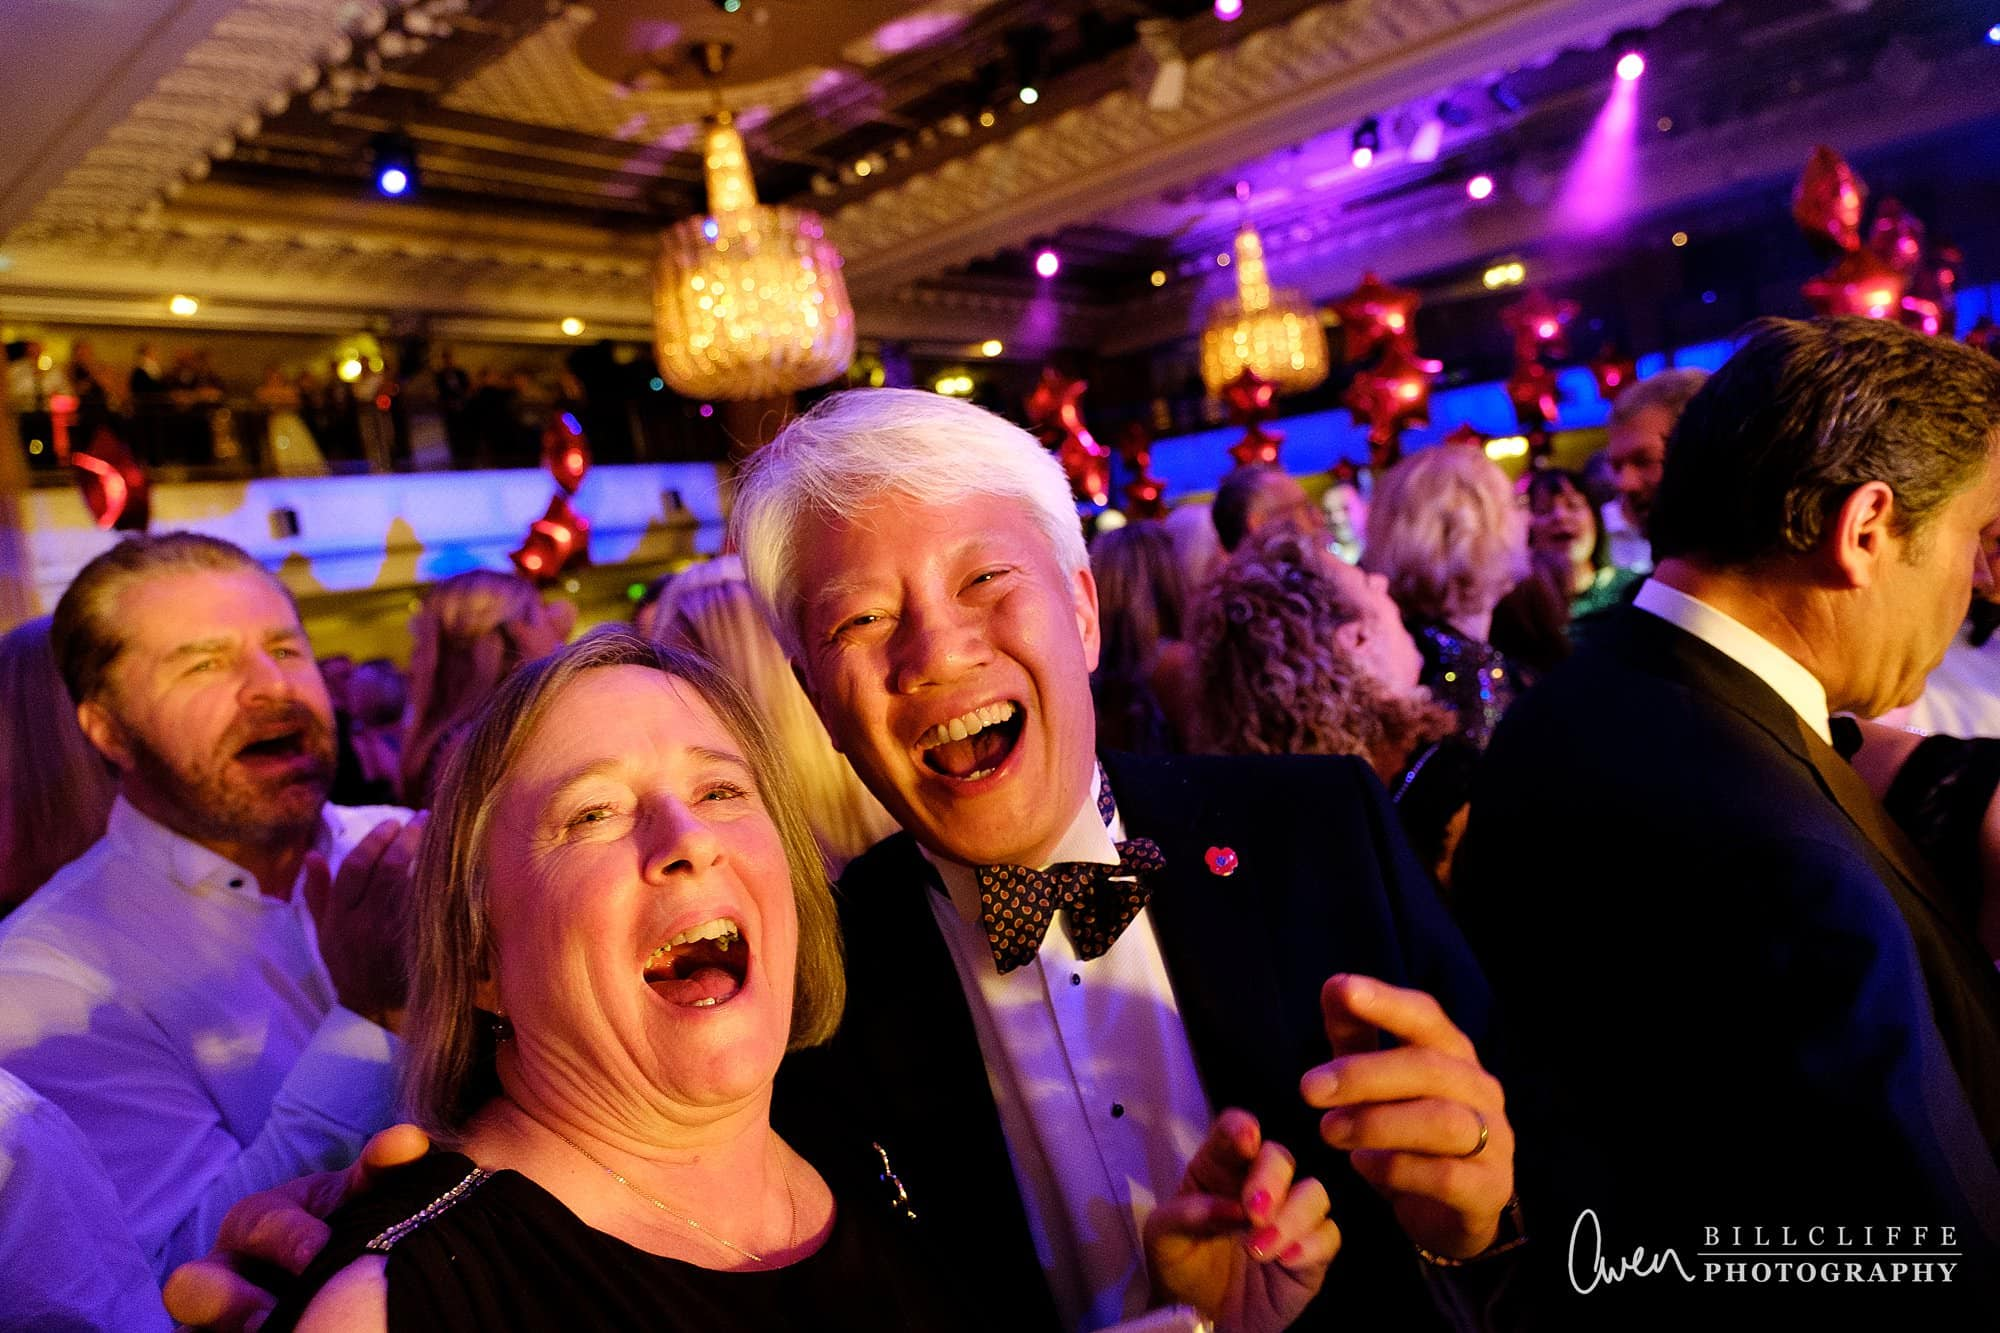 london event photographer park lane pb 037 - A Luxury Ball at Grosvenor House Park Lane